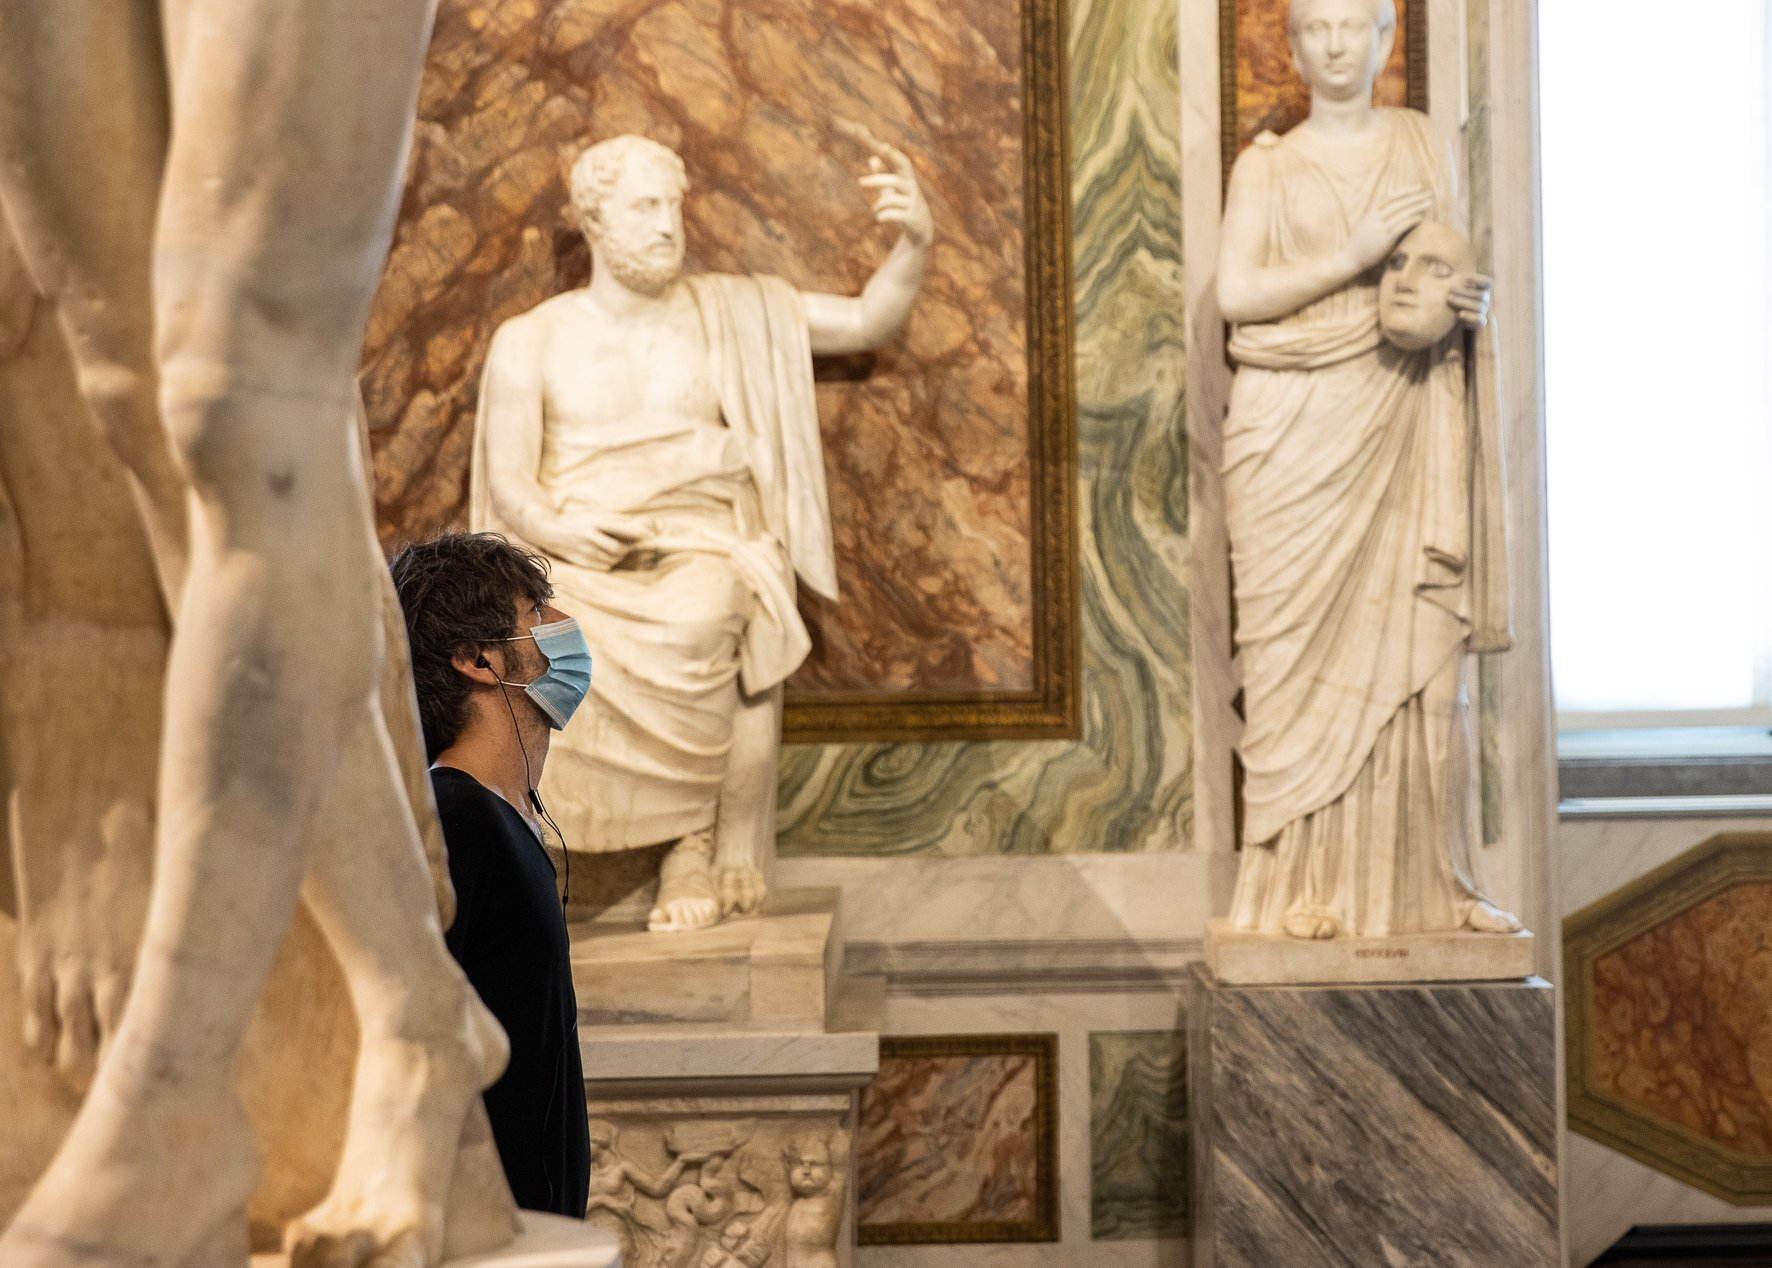 THE BORGHESE GALLERY IS REOPENING TO THE PUBLIC ON TUESDAY 19 MAY